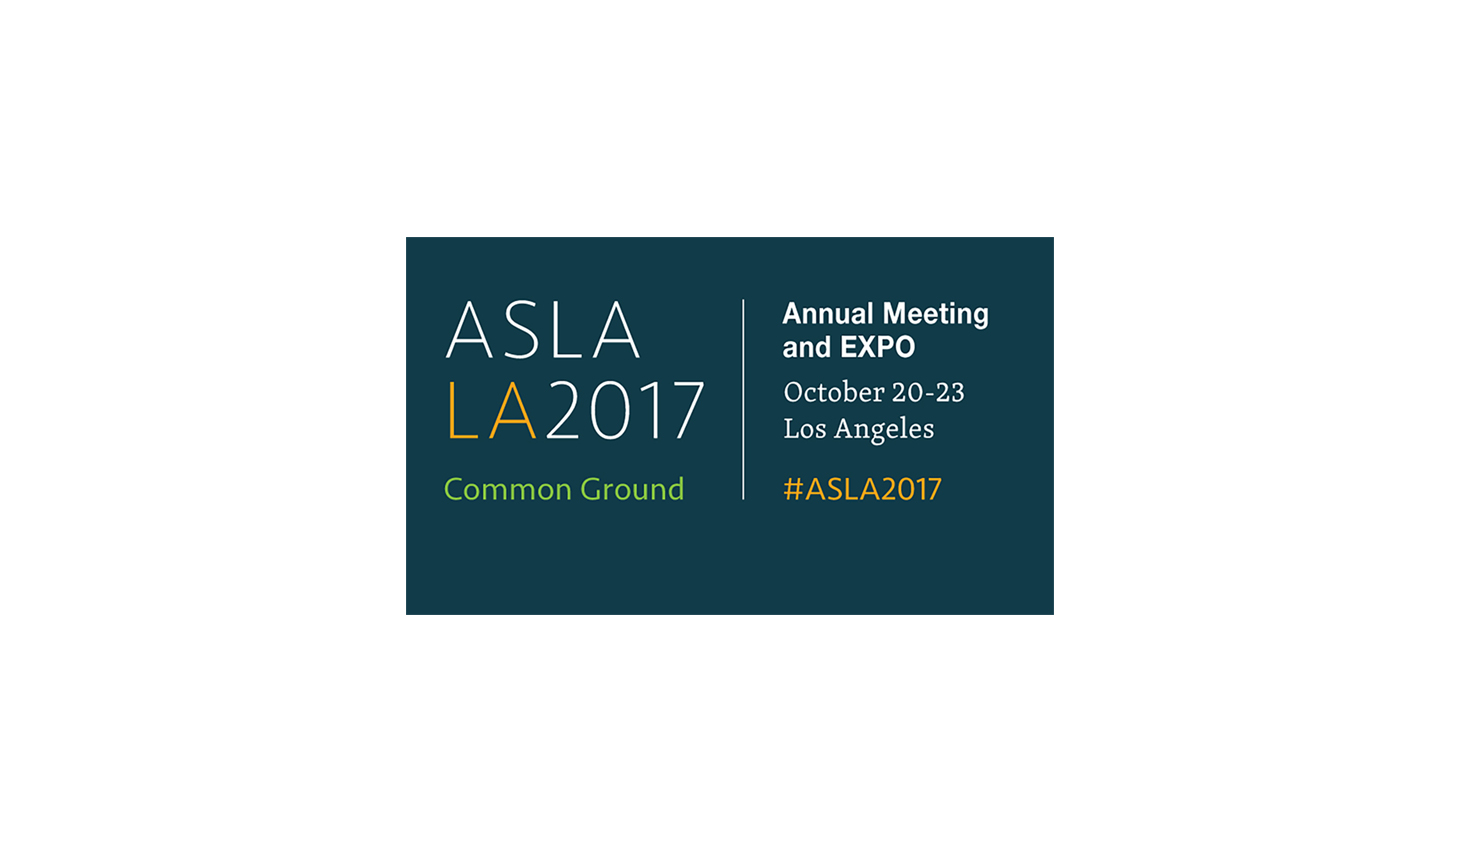 #ASLA2017 Attending The Conference for Common Ground in Los Angeles to discuss various ecological, economic, and sustainable solutions.